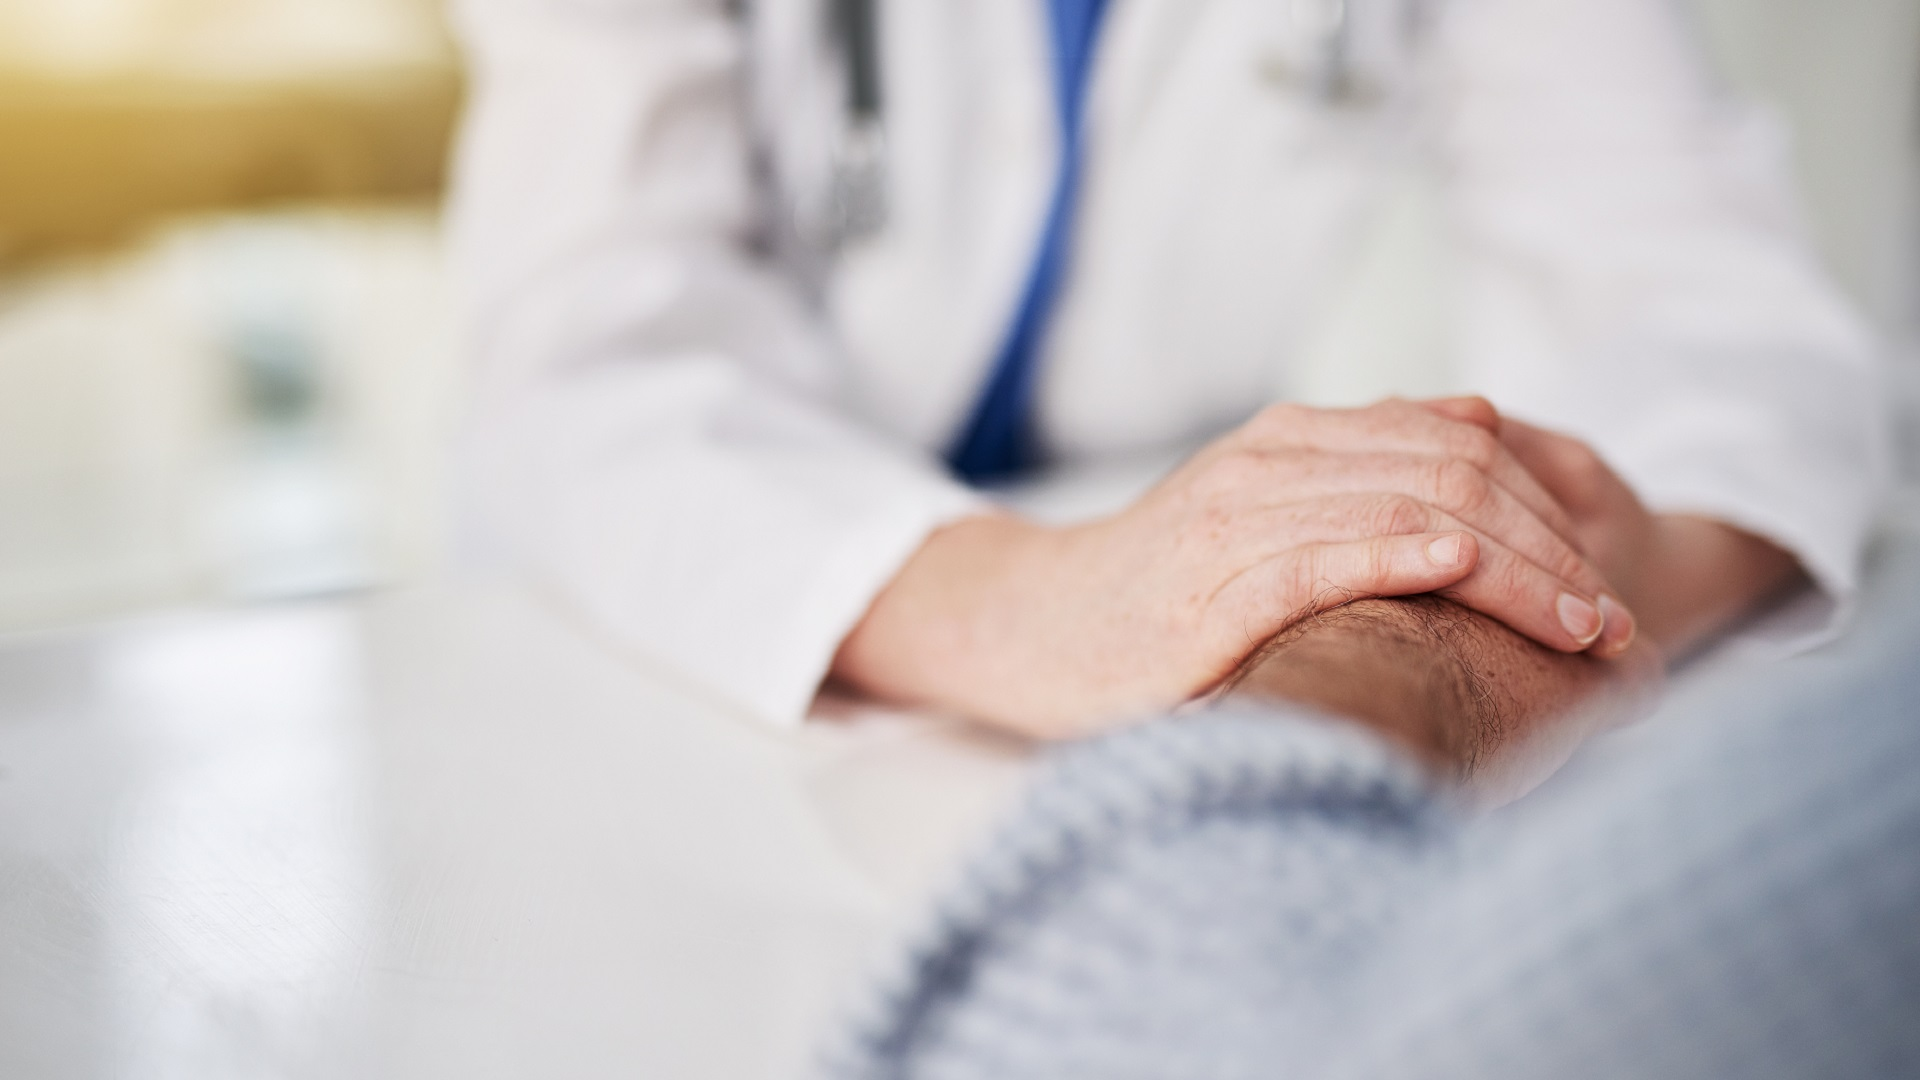 Voluntary assisted dying_health care_euthanasia